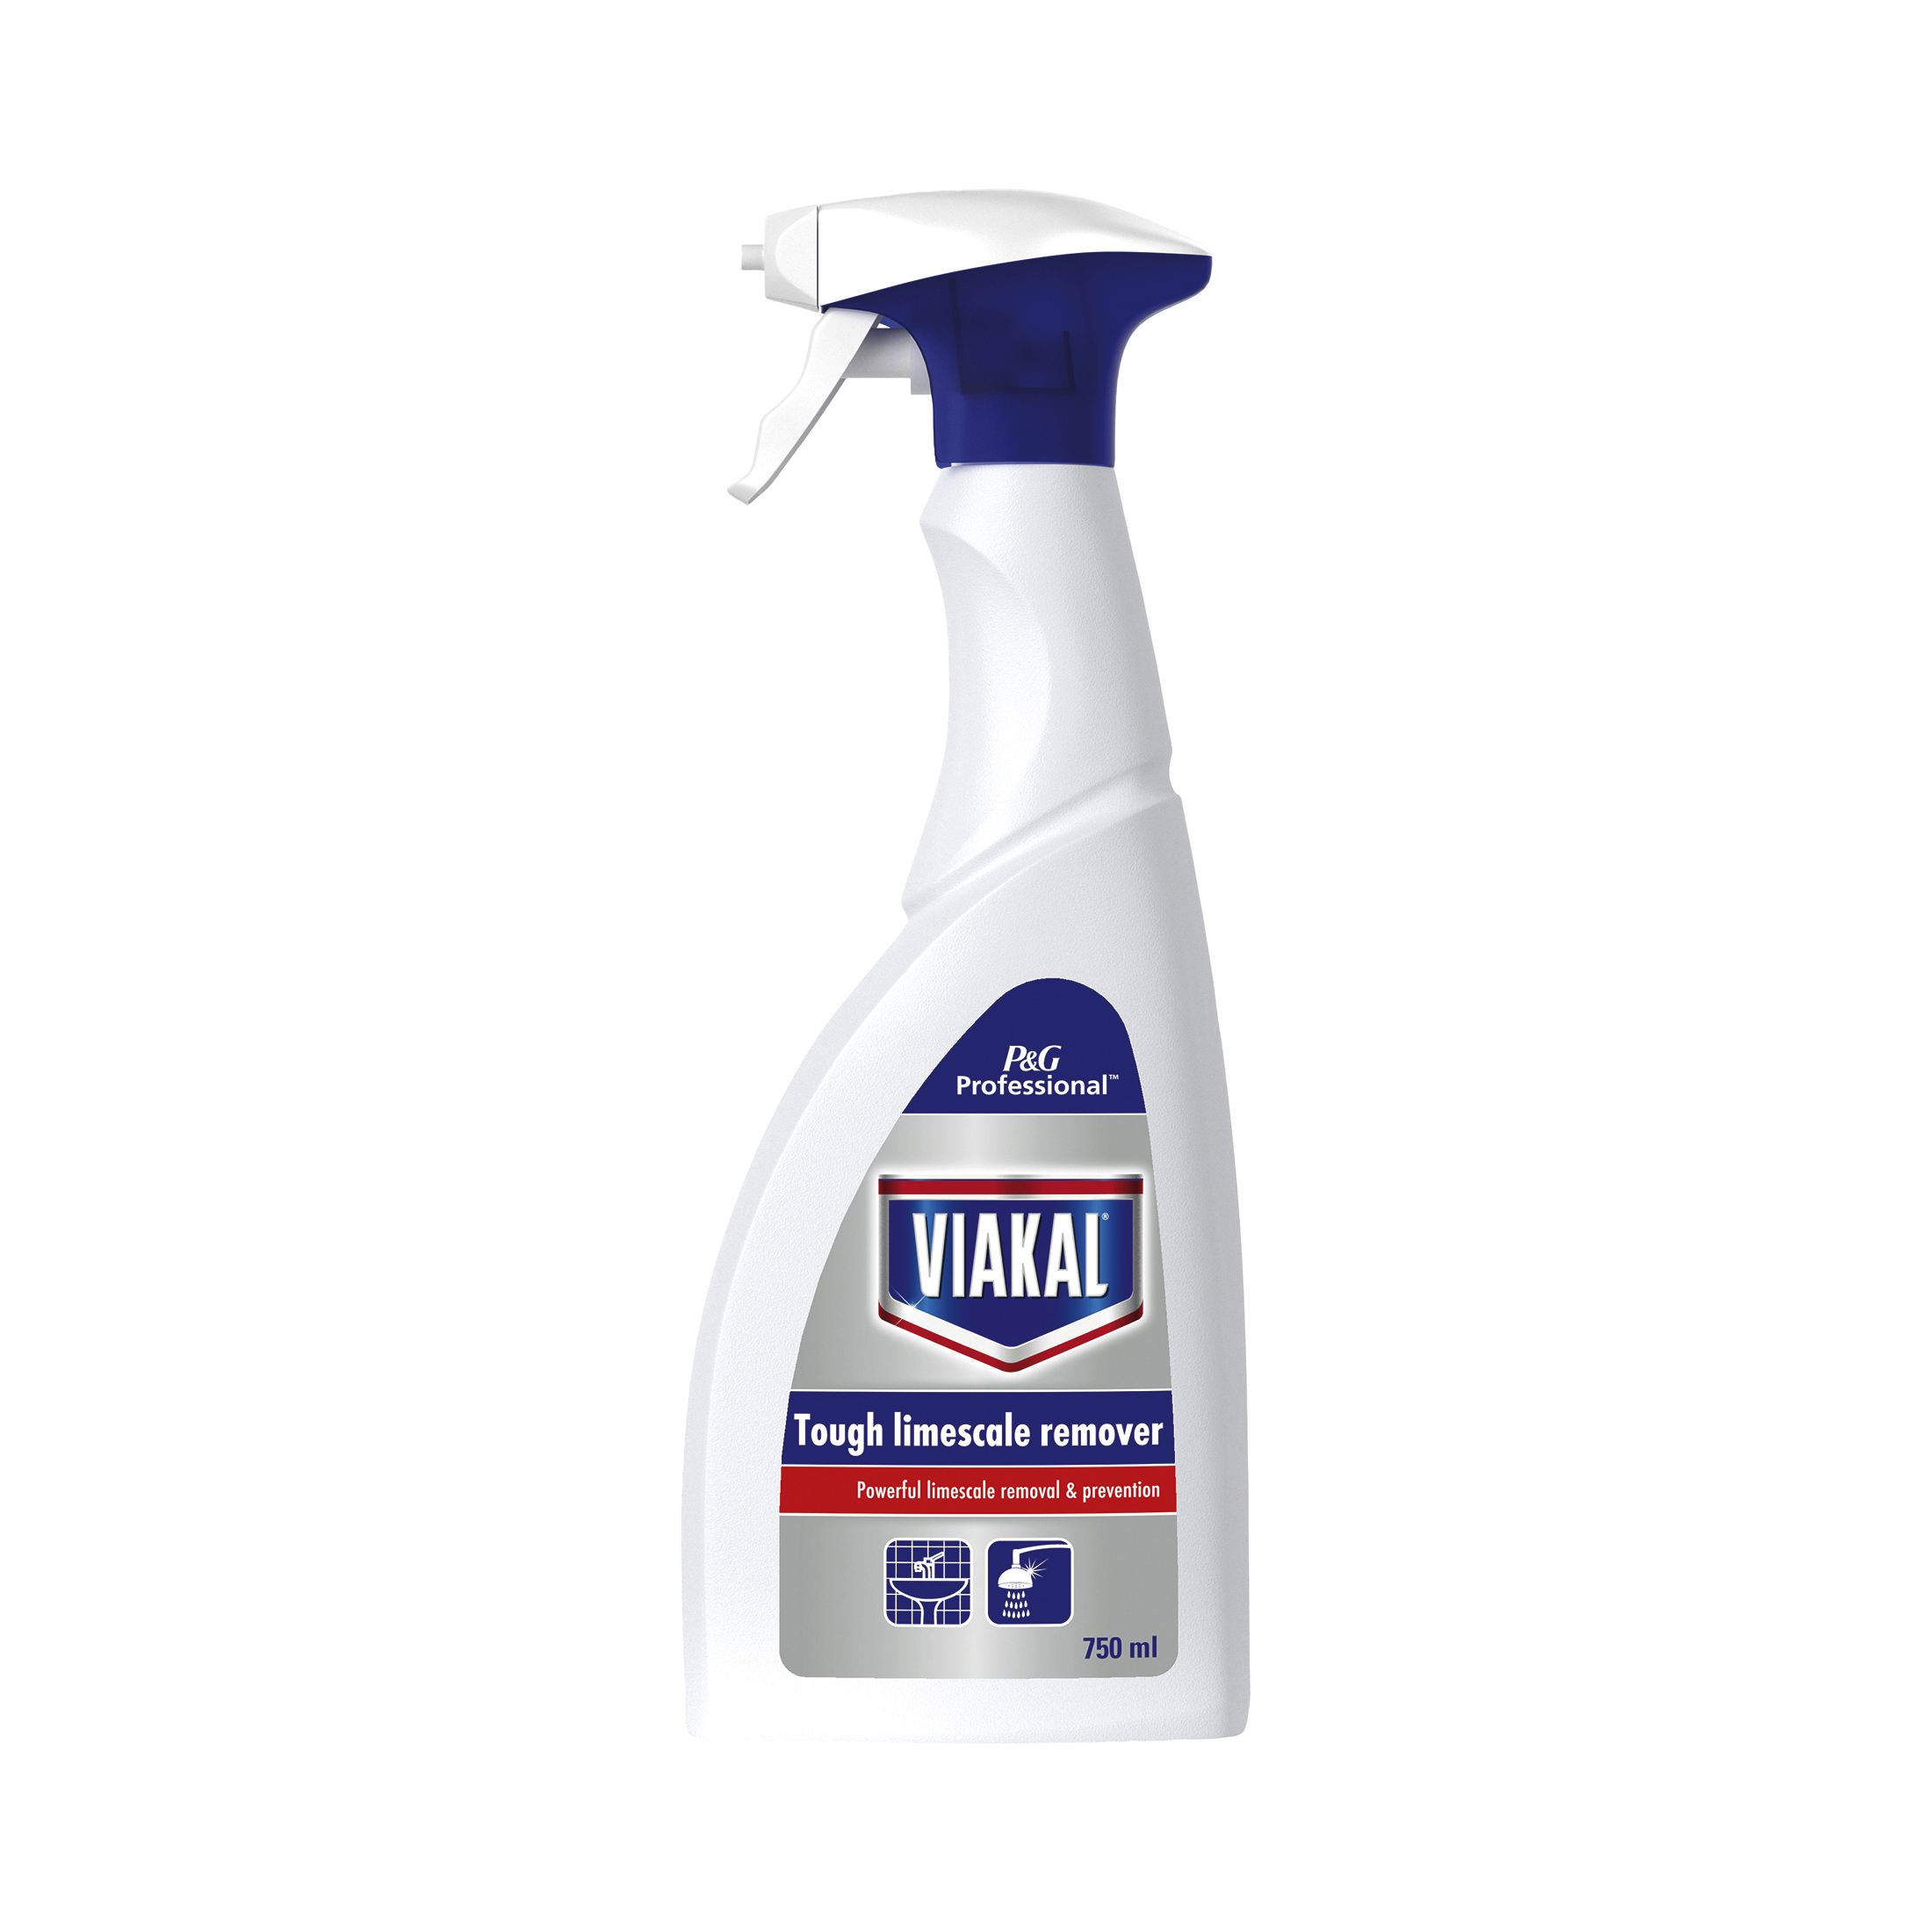 Laundry Basket Viakal Descaler Spray Professional 750ml Ref 1005001